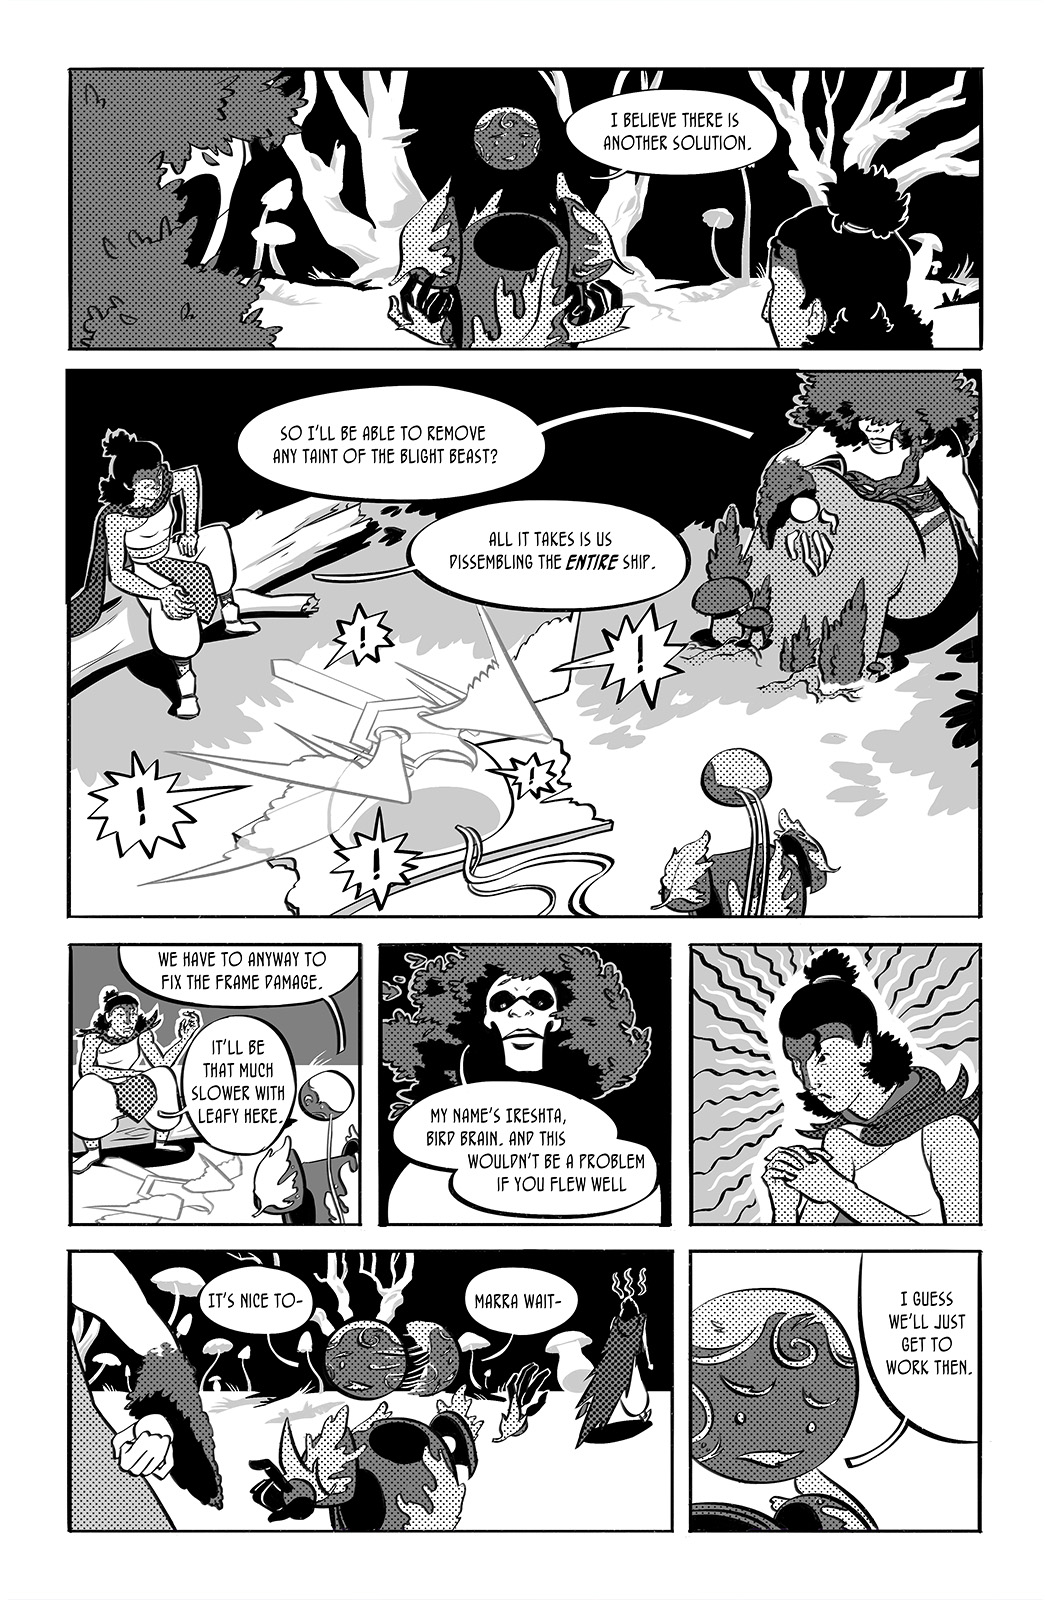 Jettisoned page 7. Raetrice shows the others their removal method. The three discuss how to use it on the ship. Marra and Ireshta (the newcomer) butt heads again before the group breaks up to work.